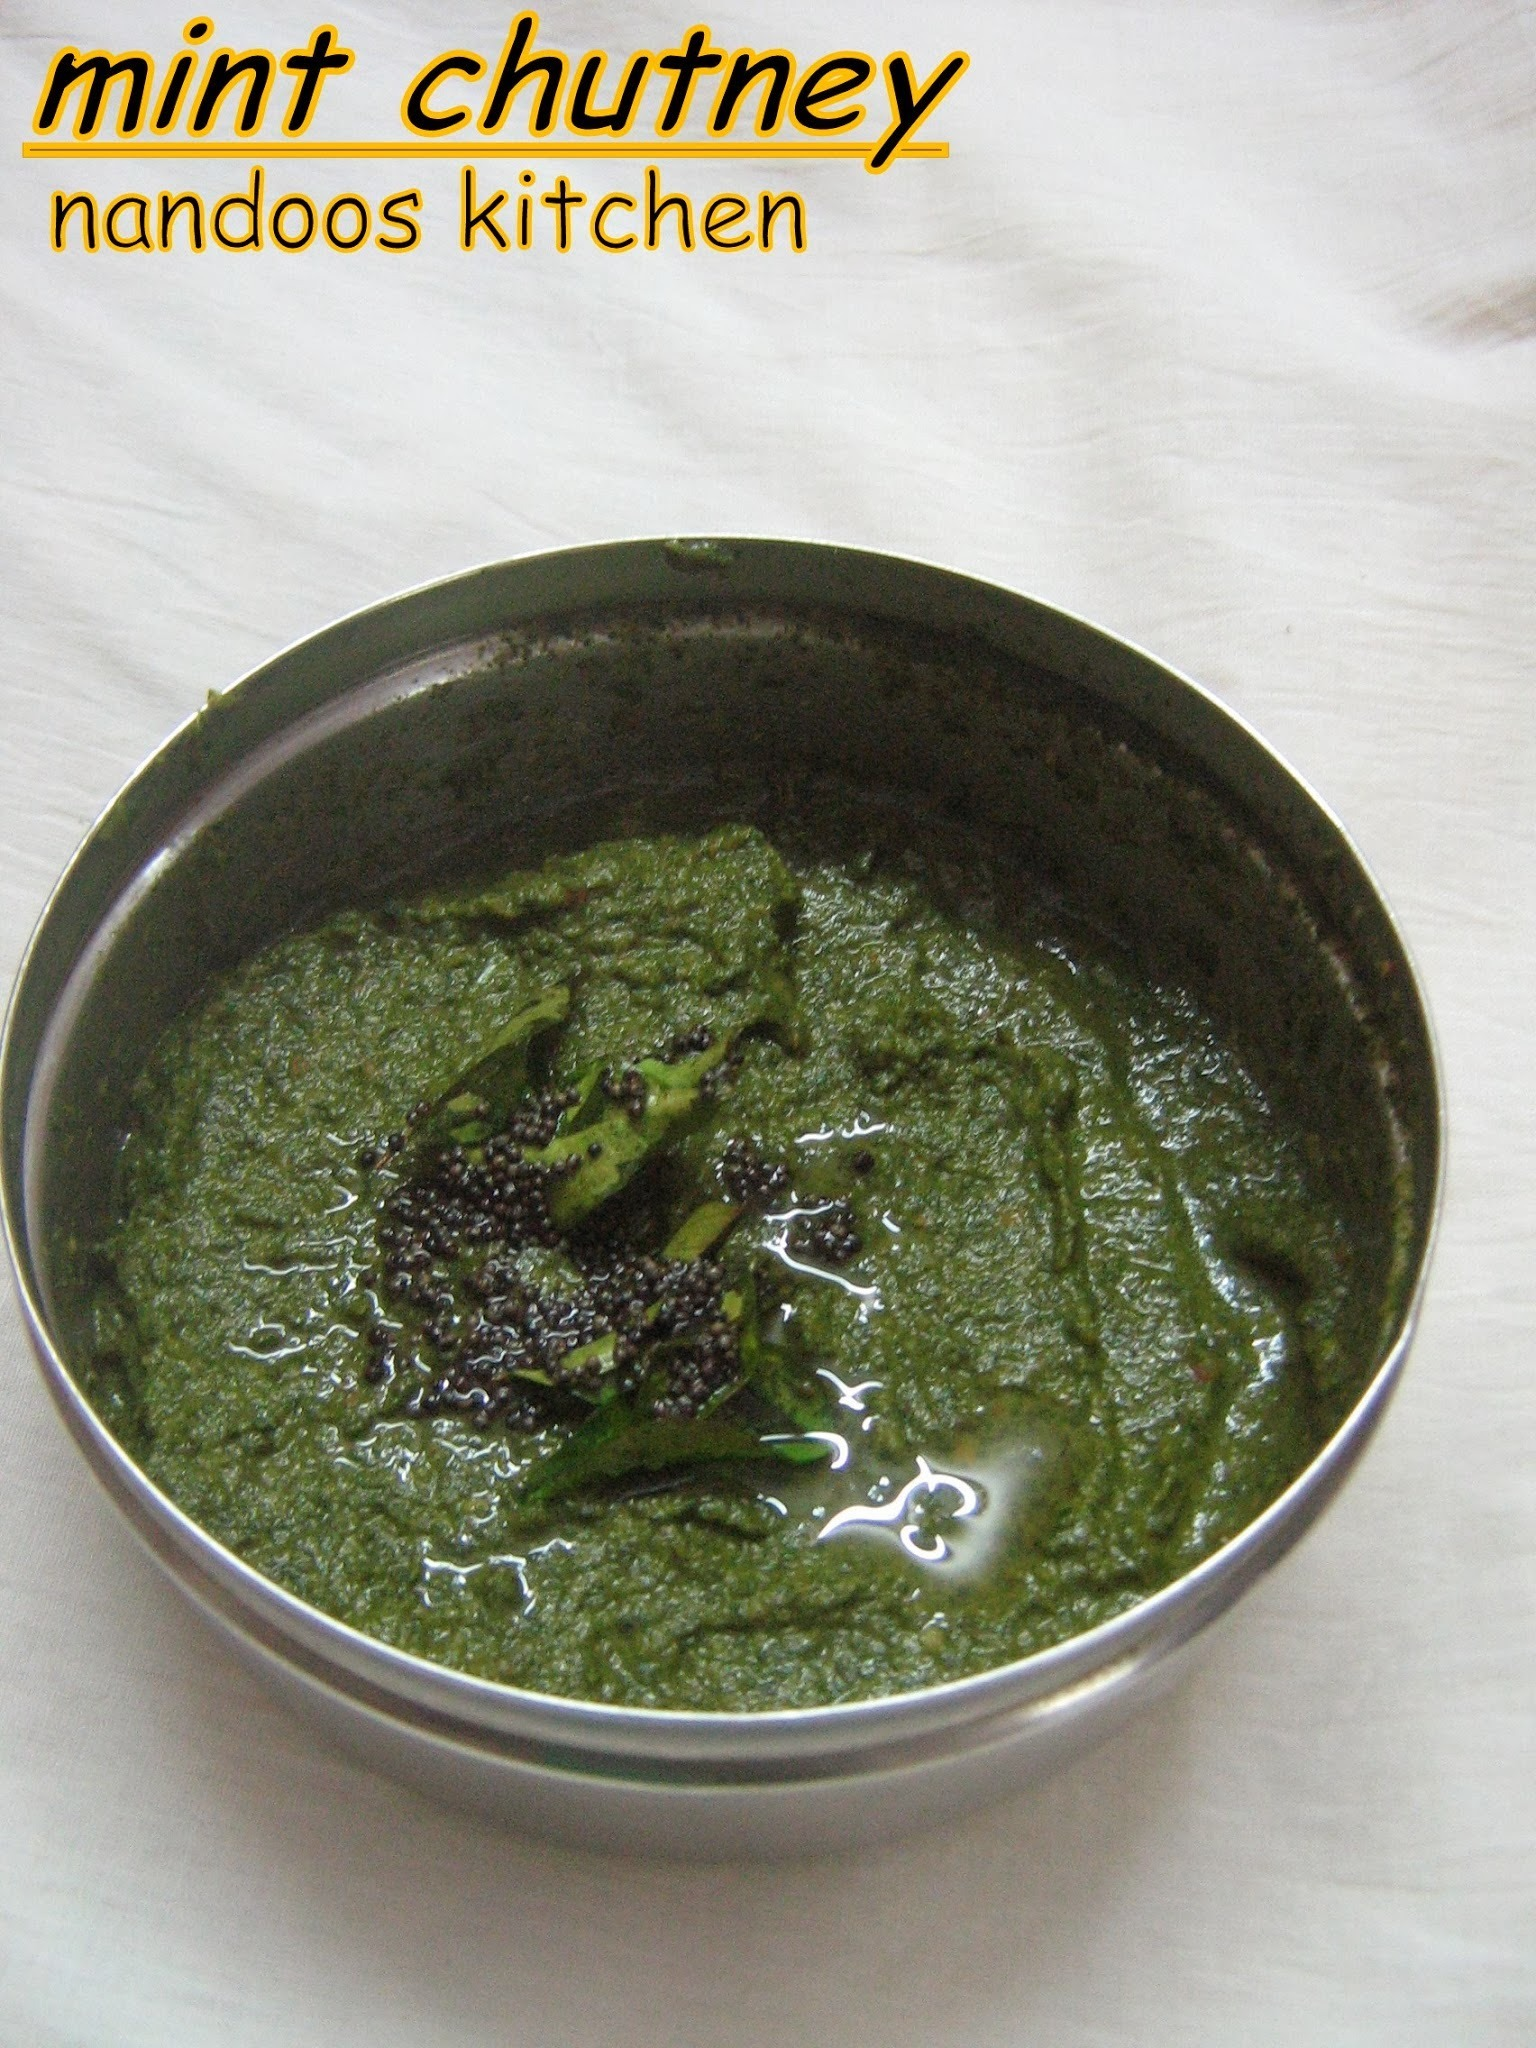 Pudina chutney (without coconut) / mint chutney (without coconut) / side dish for idly/ dosa